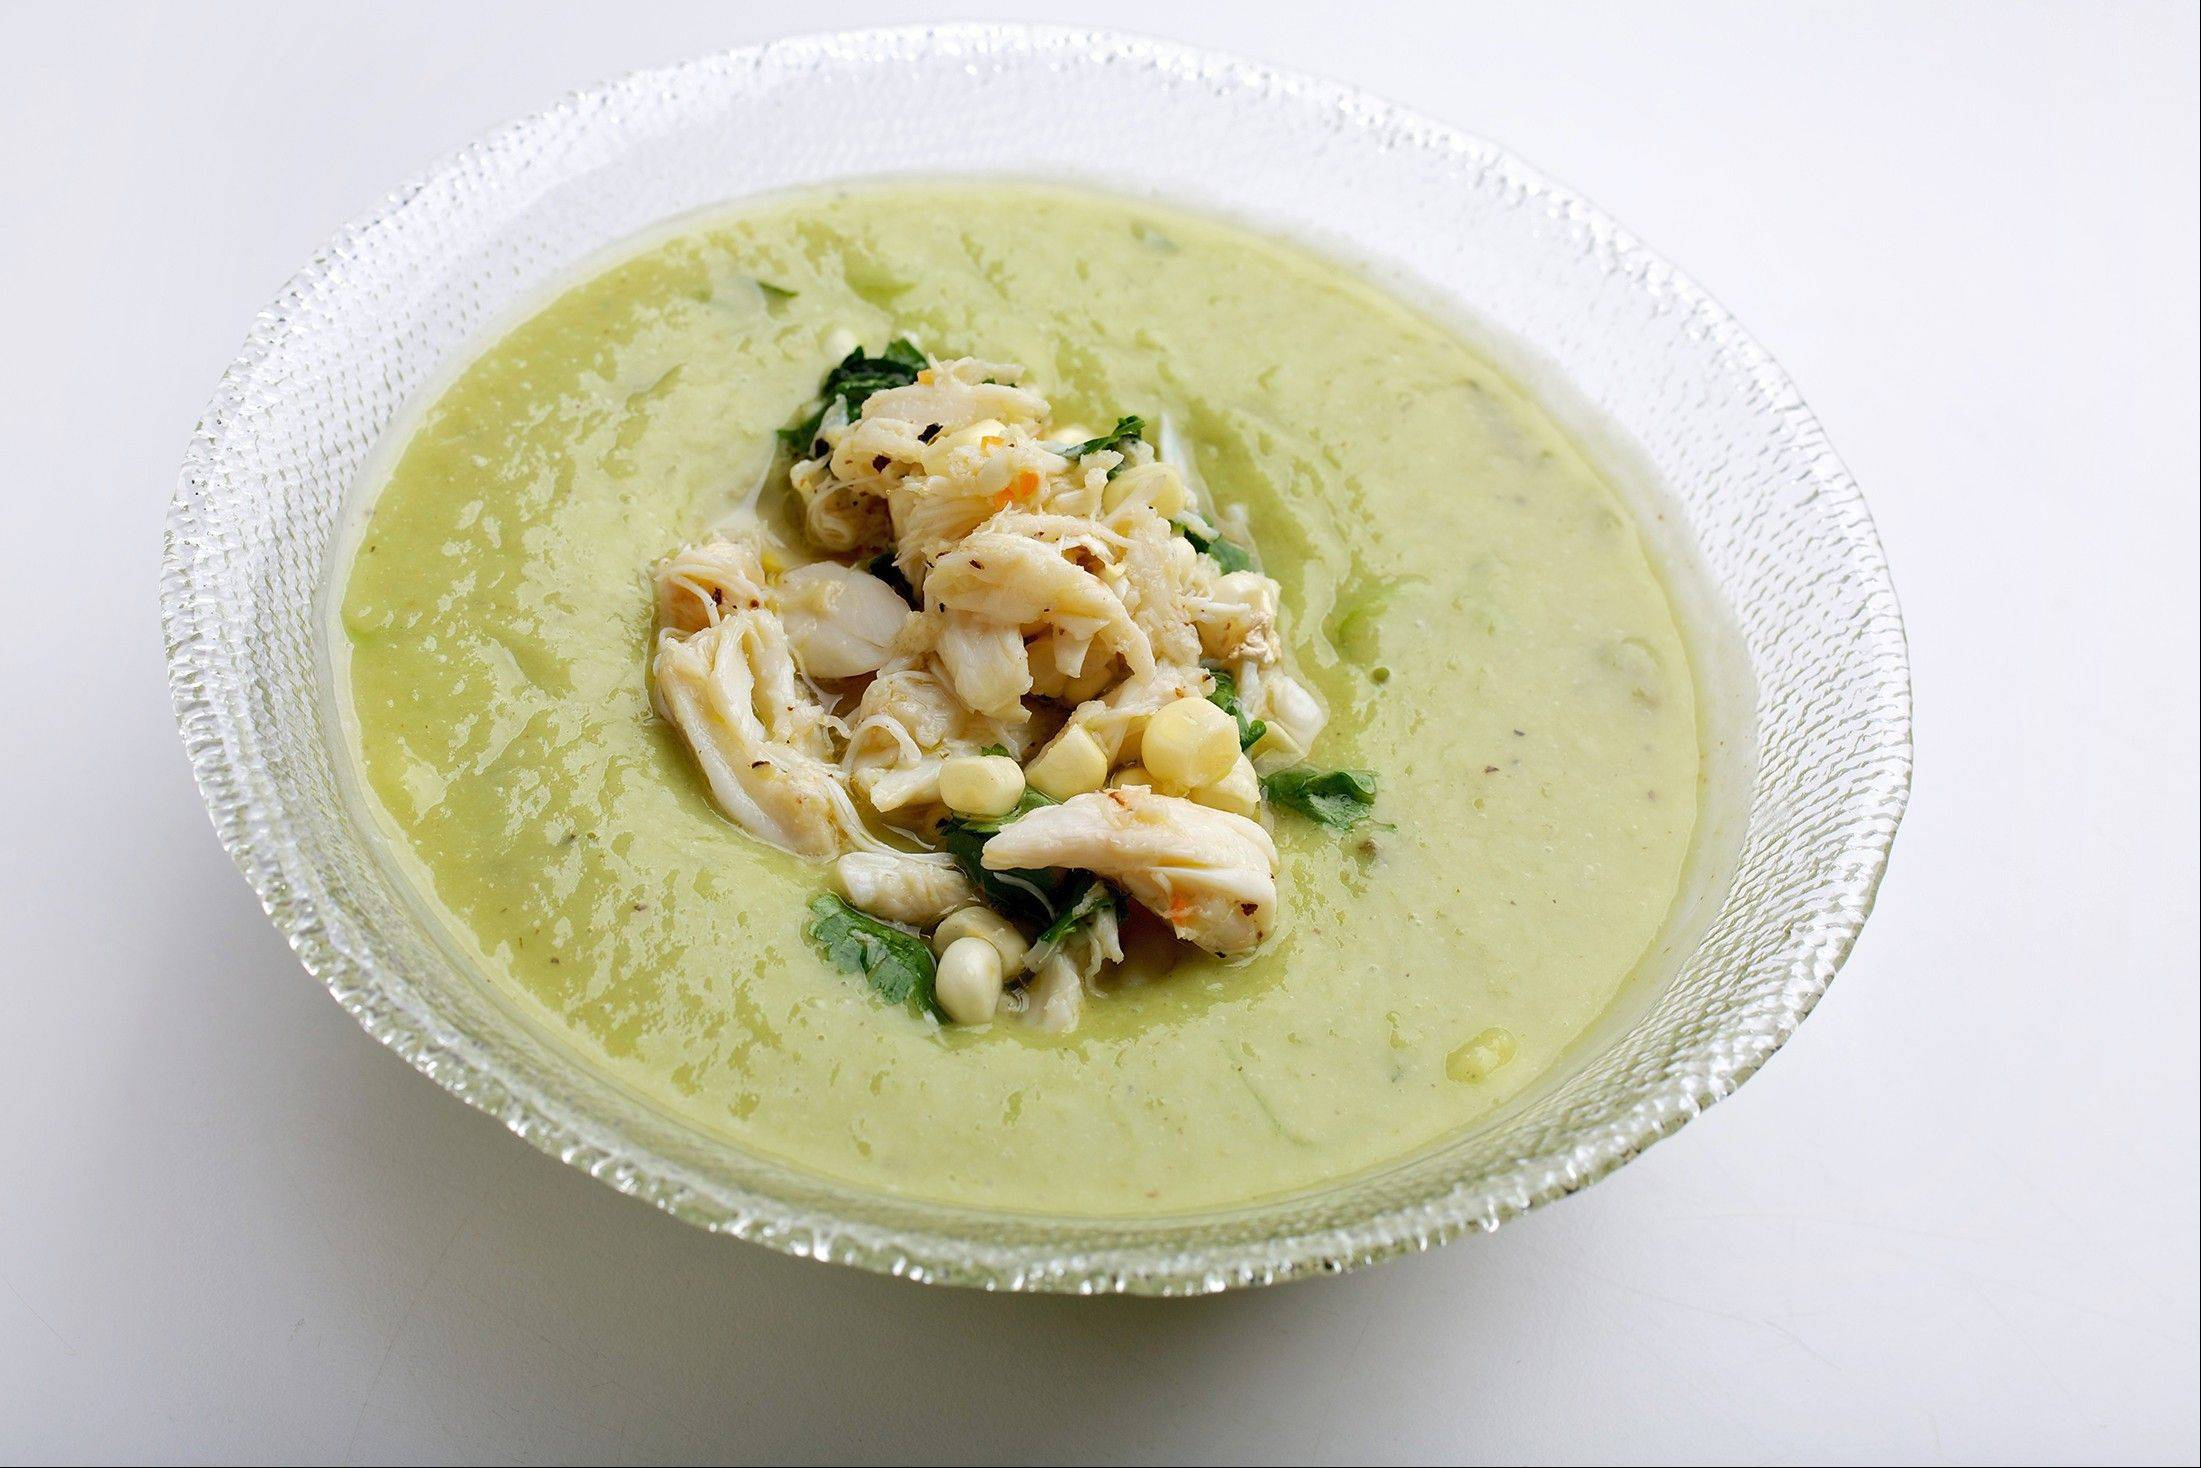 The soothing richness of Chilled Avocado and Melon Soup is perked up by the heat and acidity of the marinated crab and corn salad.